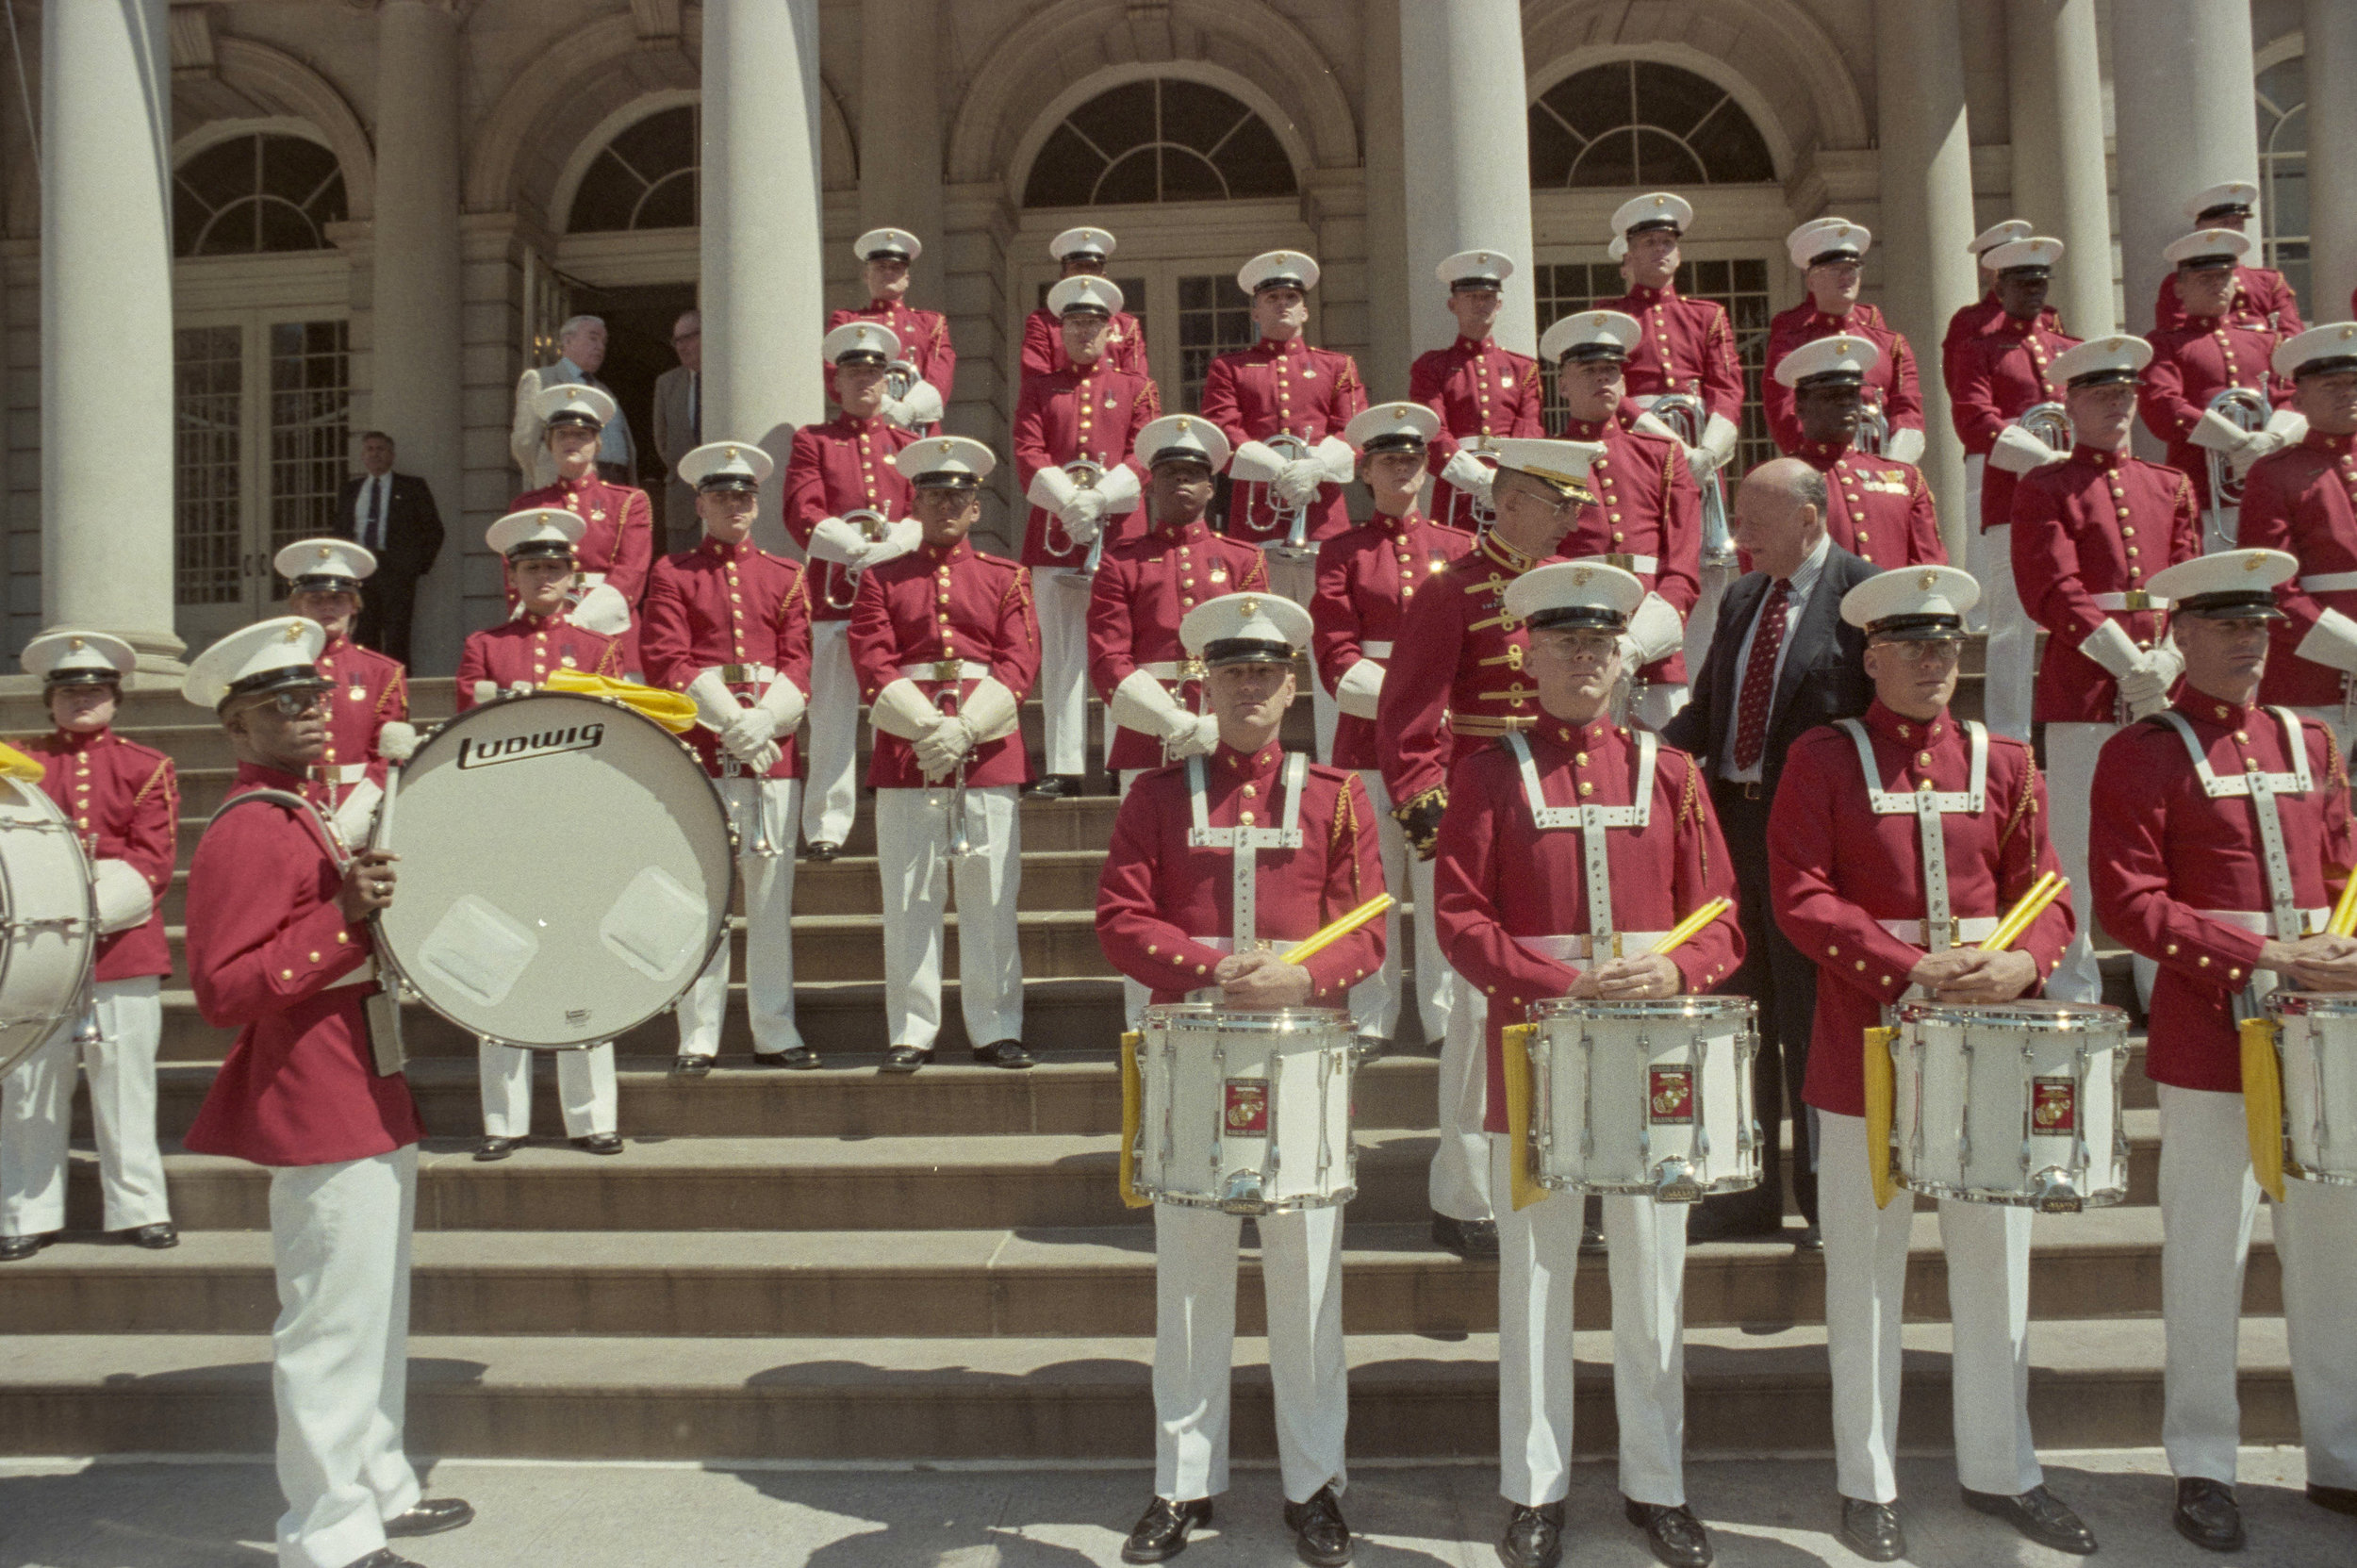 The United States Marine Corps band entertains guests at the inaugural Fleet Week welcoming ceremony on the Steps of City Hall, April 22, 1988, photographer Joan Vitale Strong. Mayor Edward I. Koch Collection, NYC Municipal Archives.